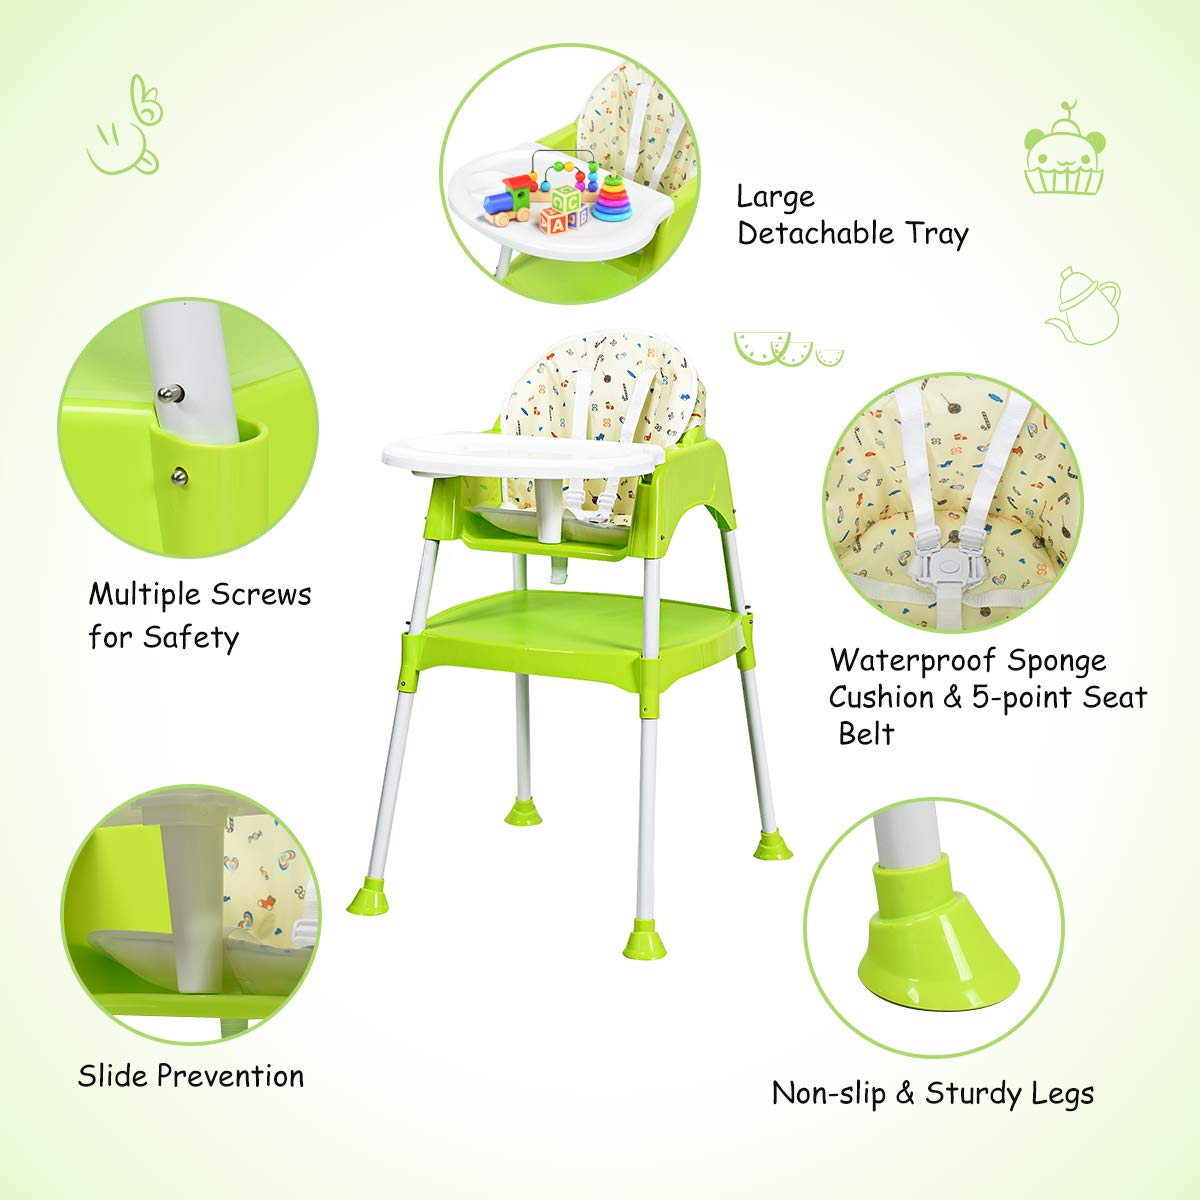 Costzon Convertible High Chair Red Snacker High Chair Seat 4 in 1 Table and Chair Set Baby Feeding with Tray /& Cup Holder Toddler Booster Furniture